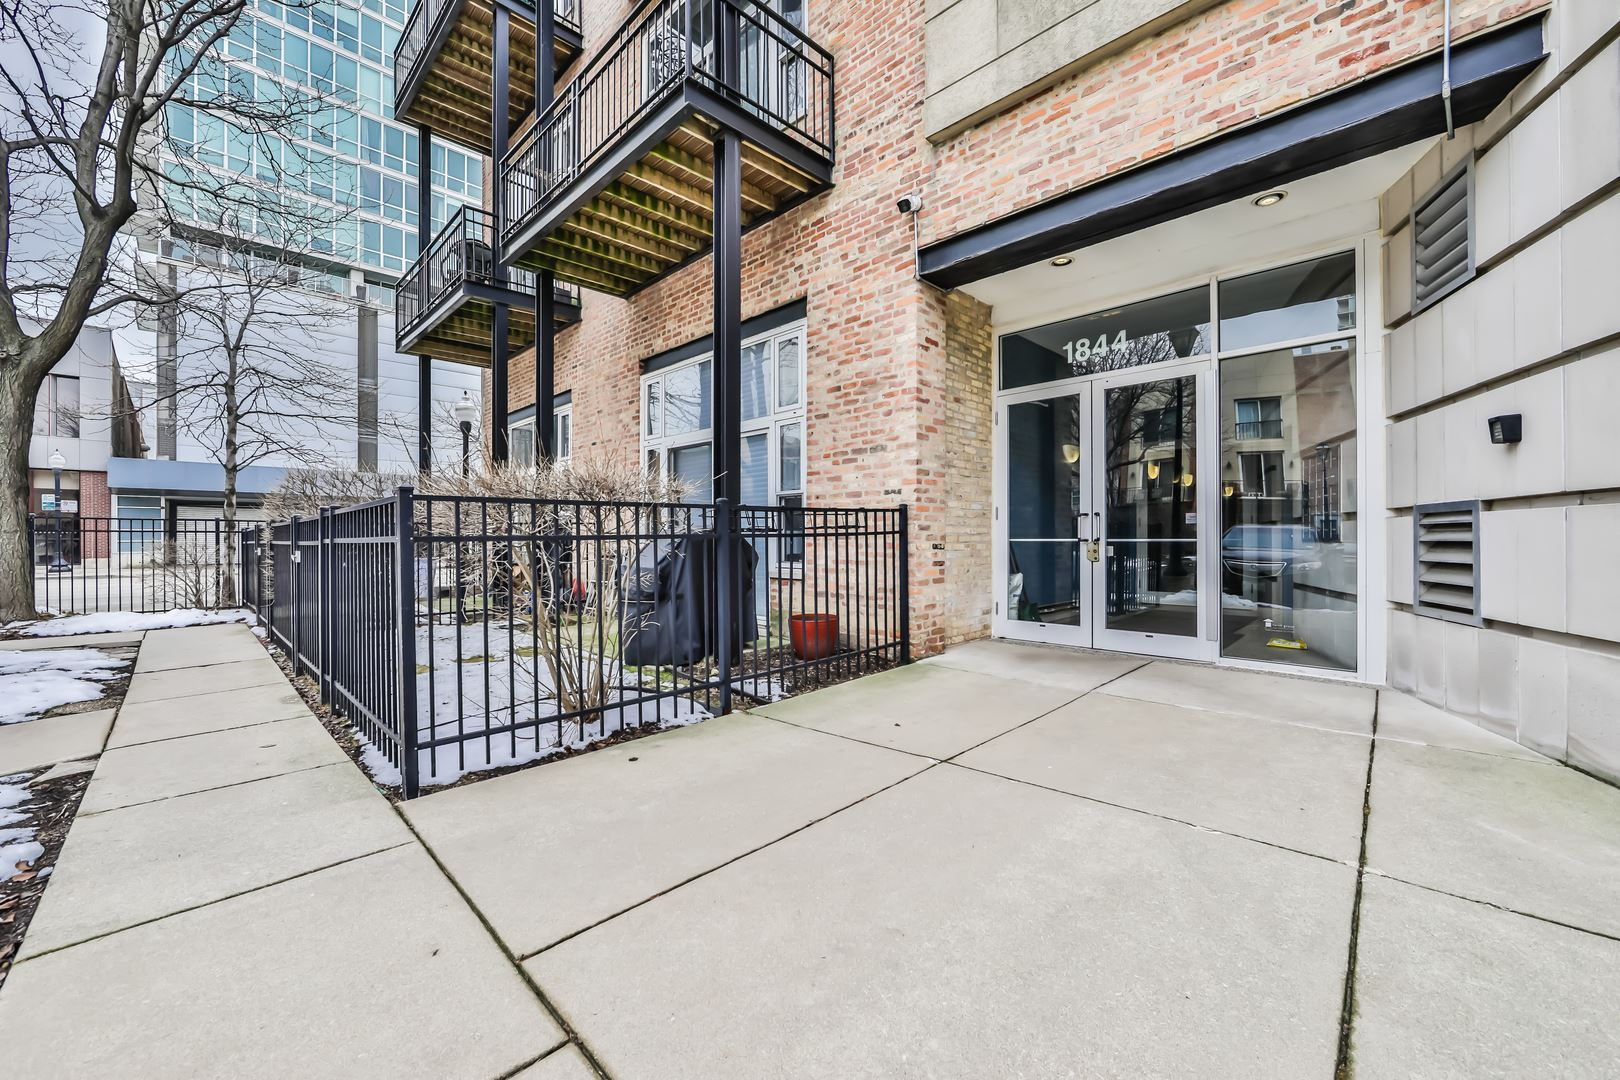 1844 S Michigan Avenue #302, Chicago, IL 60616 - #: 10683753